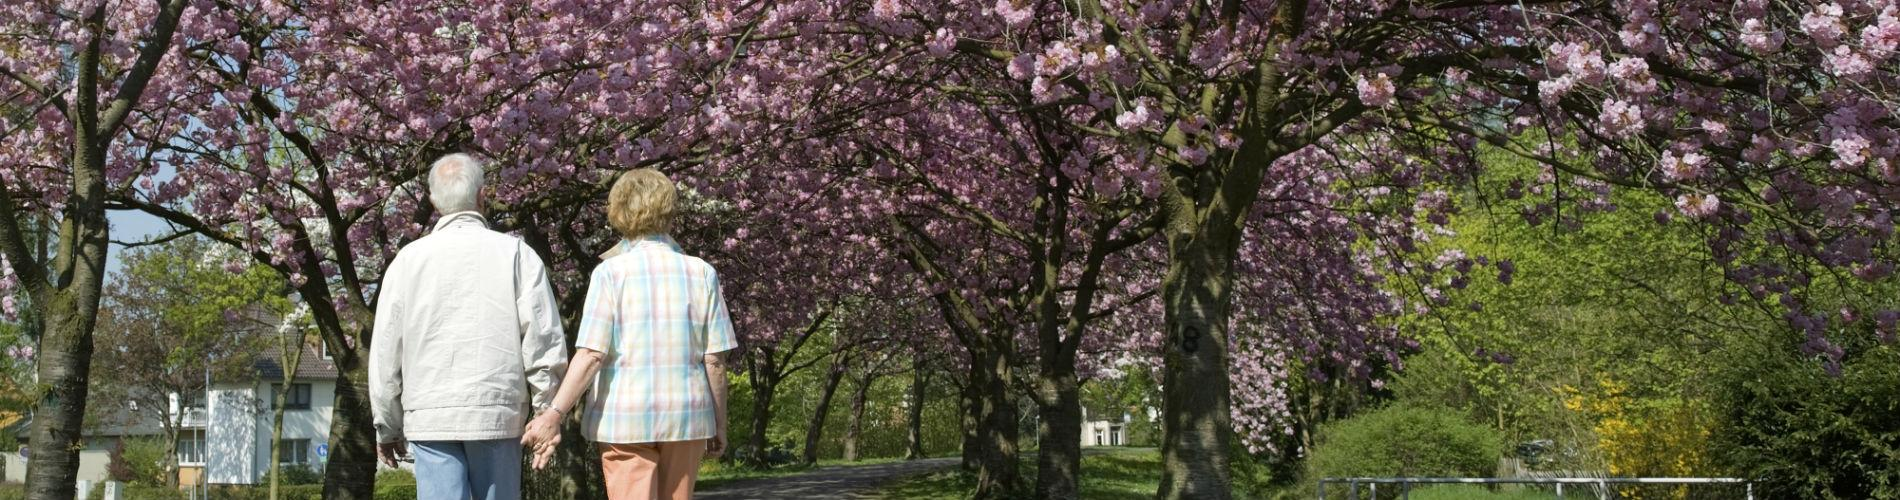 Rear view on a senior couple walking under blooming cherry trees.